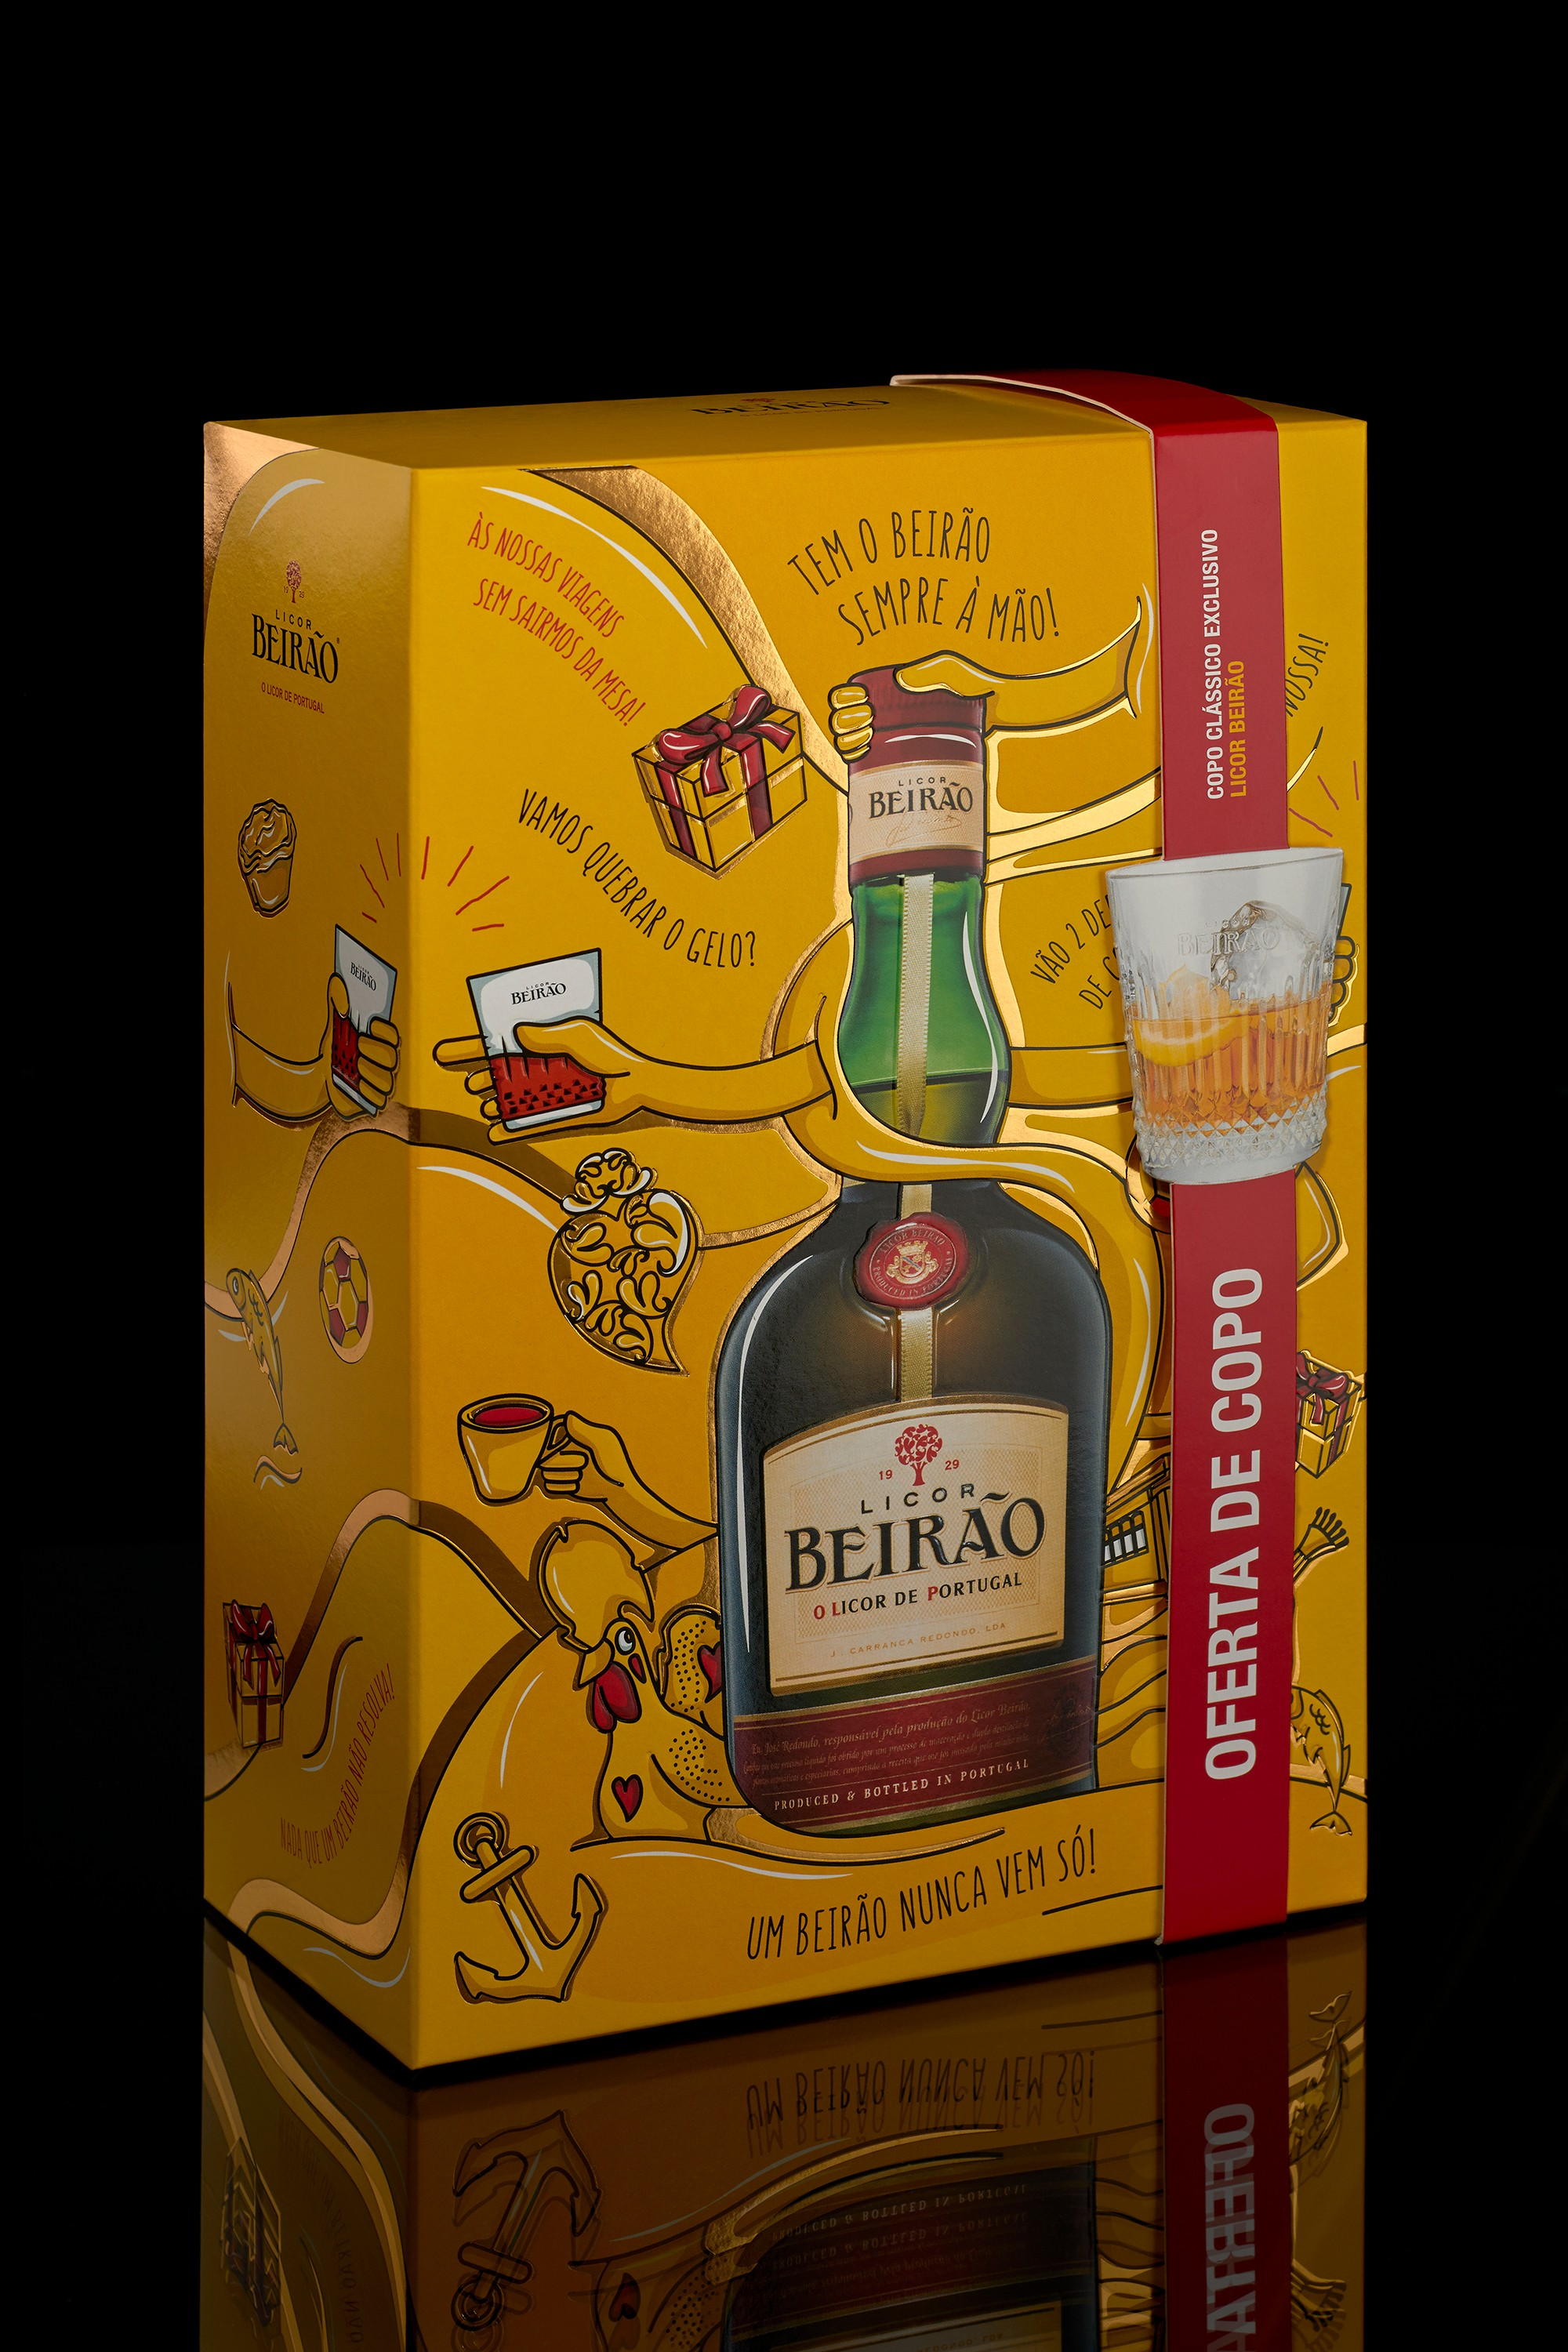 The Portuguese Feeling of Licor Beirão Illustrated by Omdesign